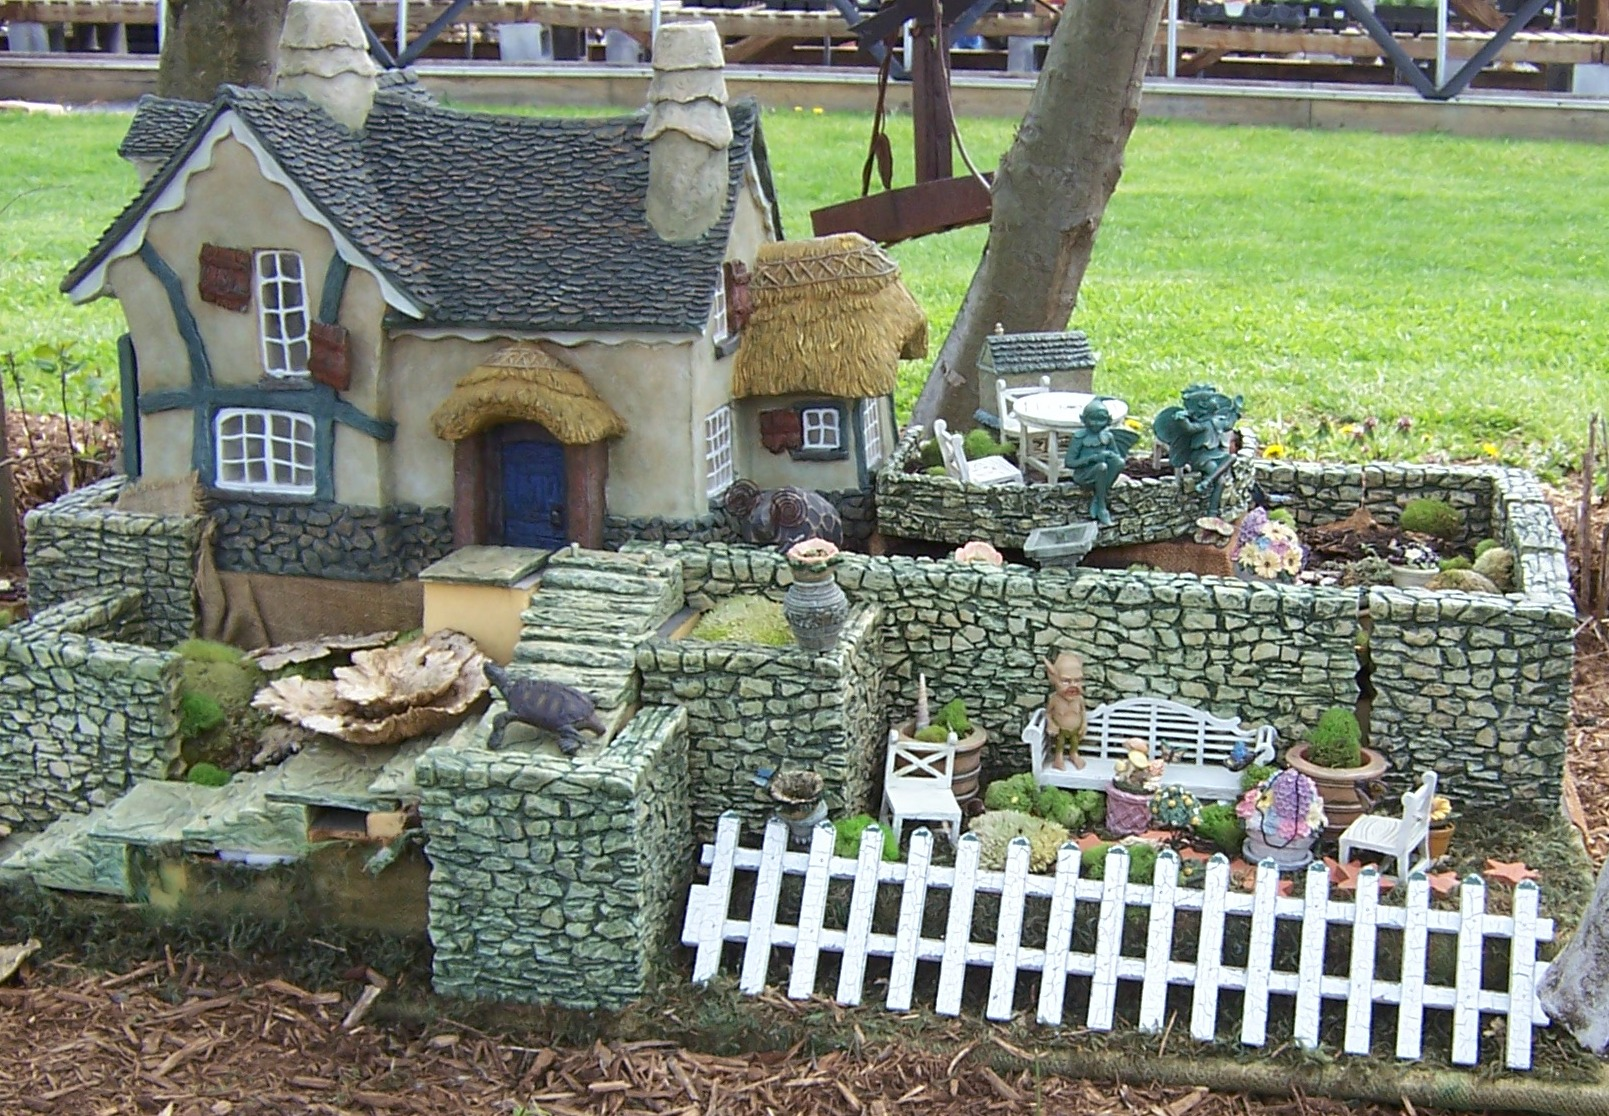 Garden Design Using Rocks garden design: garden design with bibbidibobbidiboo! create a